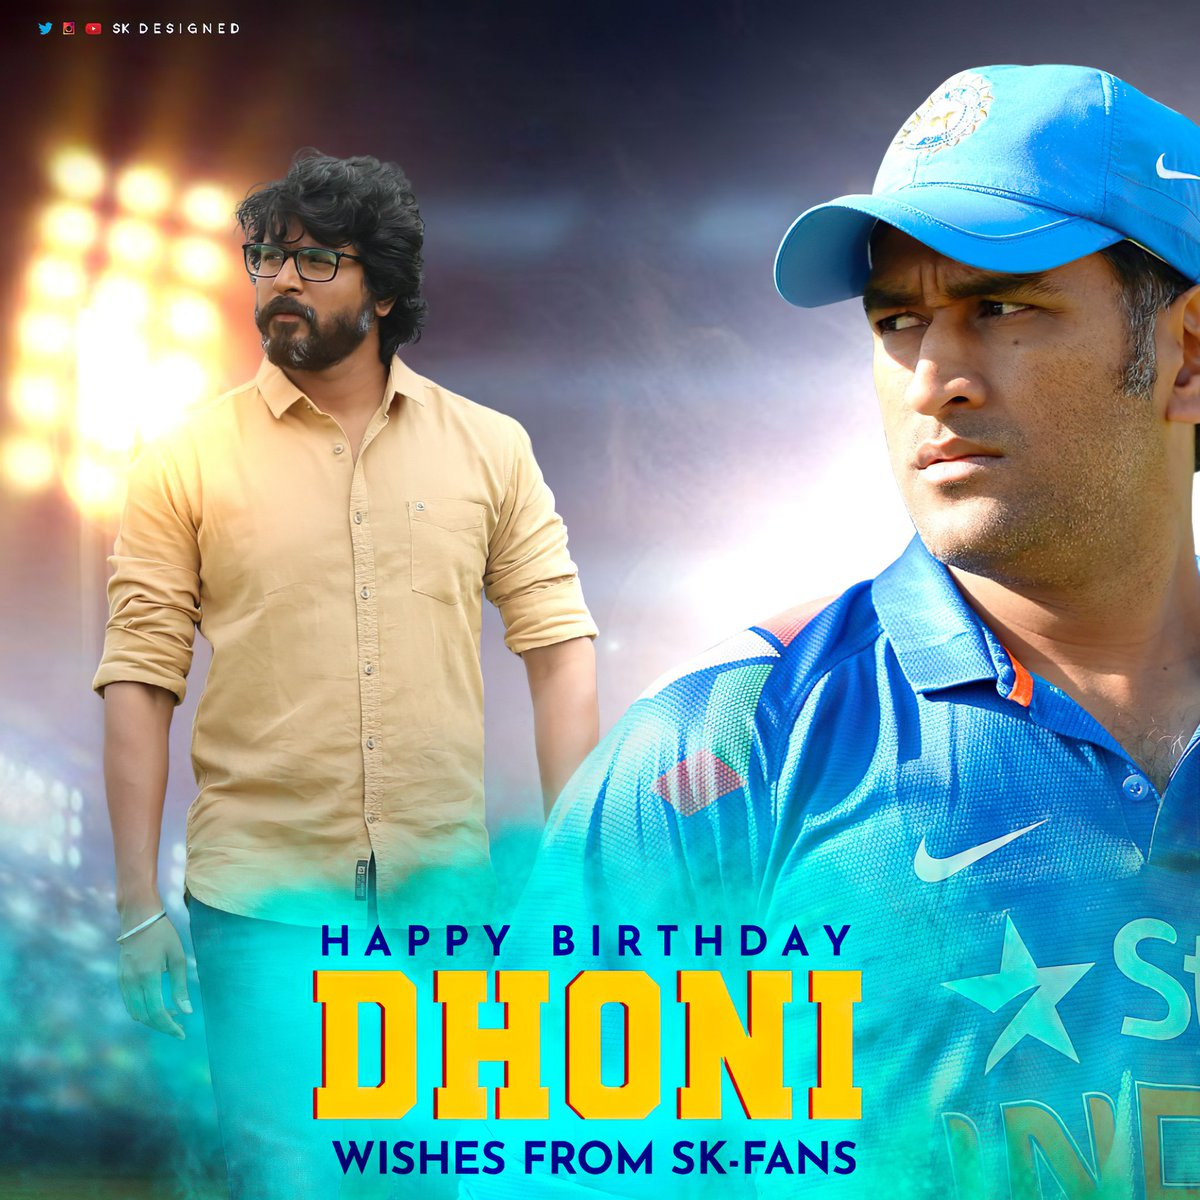 Here It Is The Special Design For #MSDhoni Birthday From #Prince @Siva_Kartikeyan Fans !! 🔥   Wish You Happy Birthday @msdhoni On Behalf All #Prince @Siva_Kartikeyan Anna Fans  @DHONIism @msdfansofficial @TrendsDhoni   #HBDDhoni  #HappyBirthdayDhoni  #HBDDhoniFromSKFans https://t.co/Fa2PyLiJV3